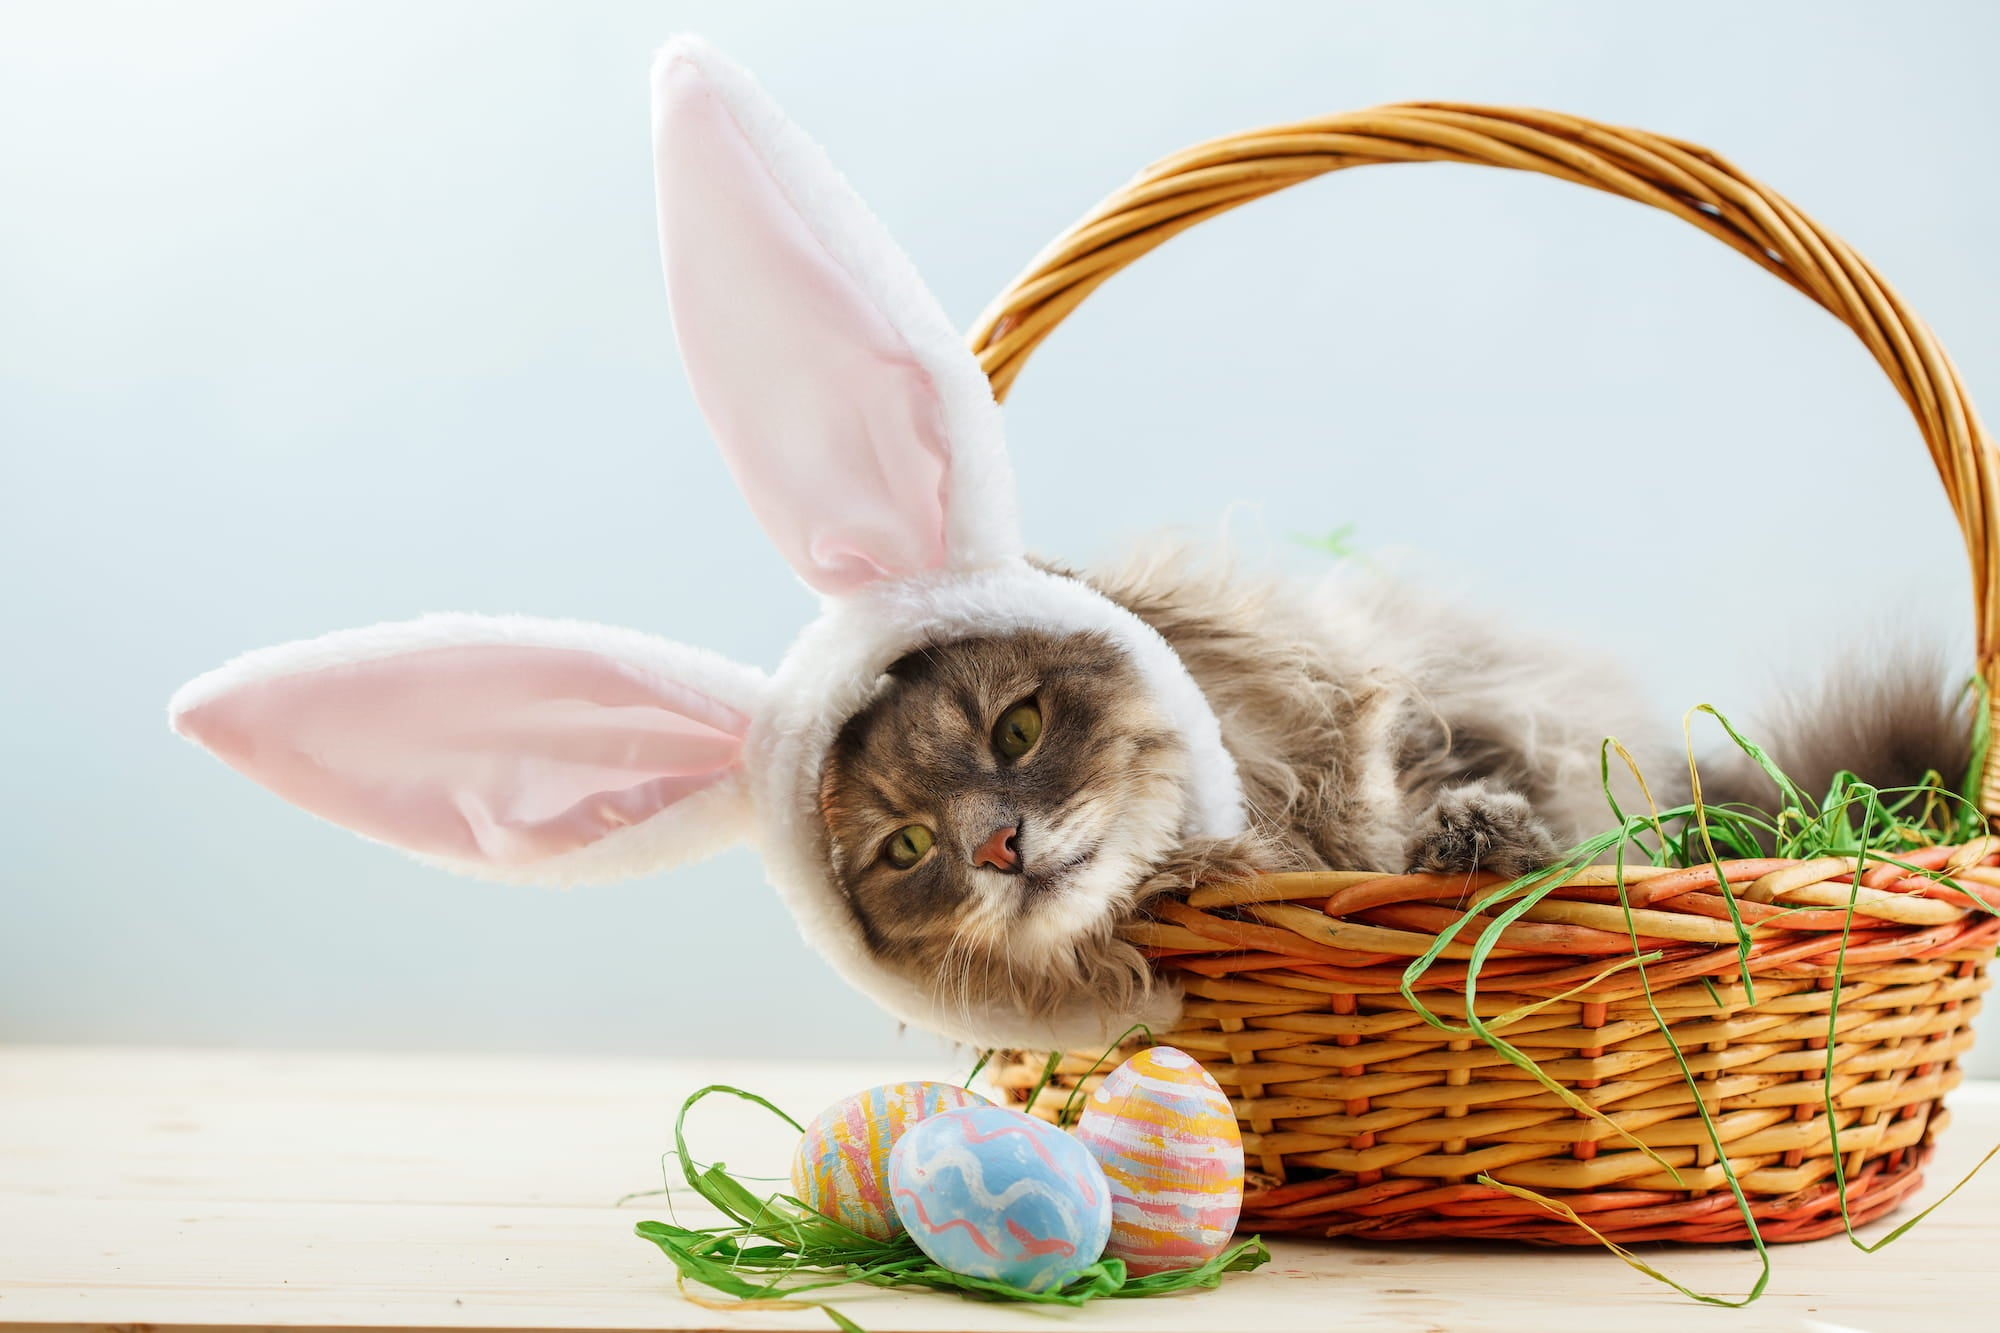 Cat wearing bunny ears and sitting in an Easter basket.